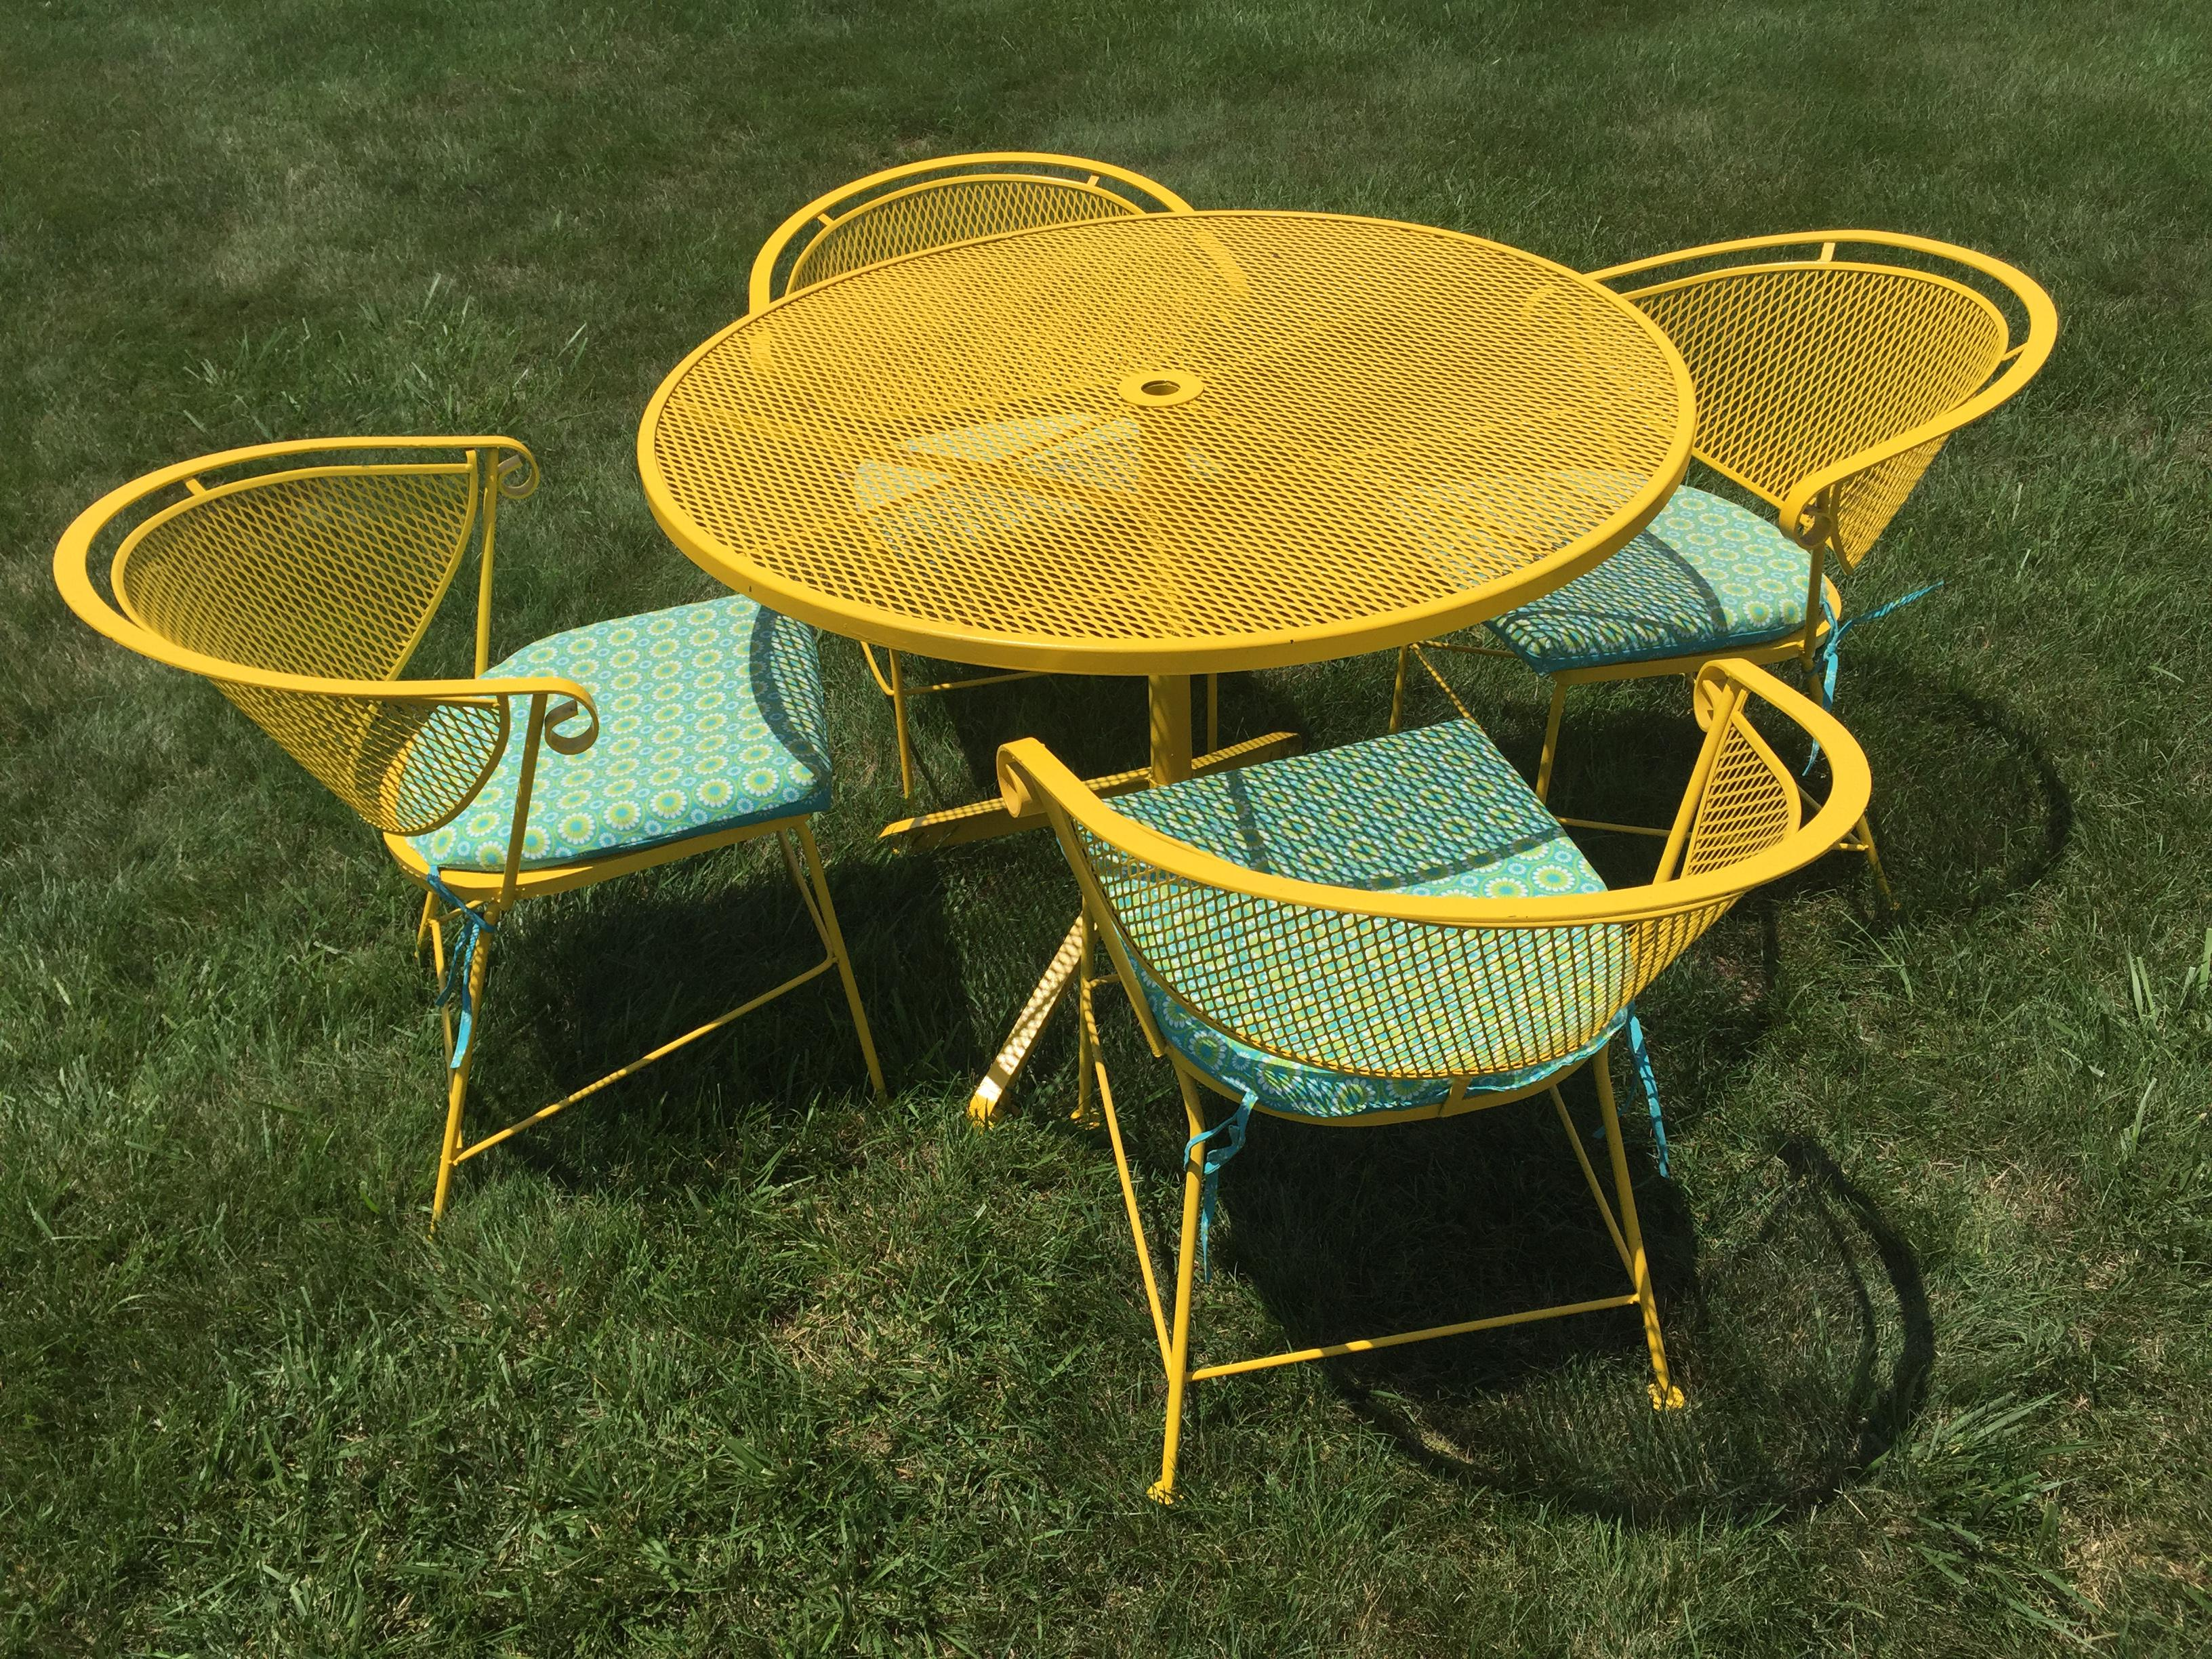 Beau Mid Century Modern Yellow Patio Set For Sale. VINTAGE METAL TABLE U0026 4  CHAIRS. Piece Is In Great Condition. Beautiful Mesh Top